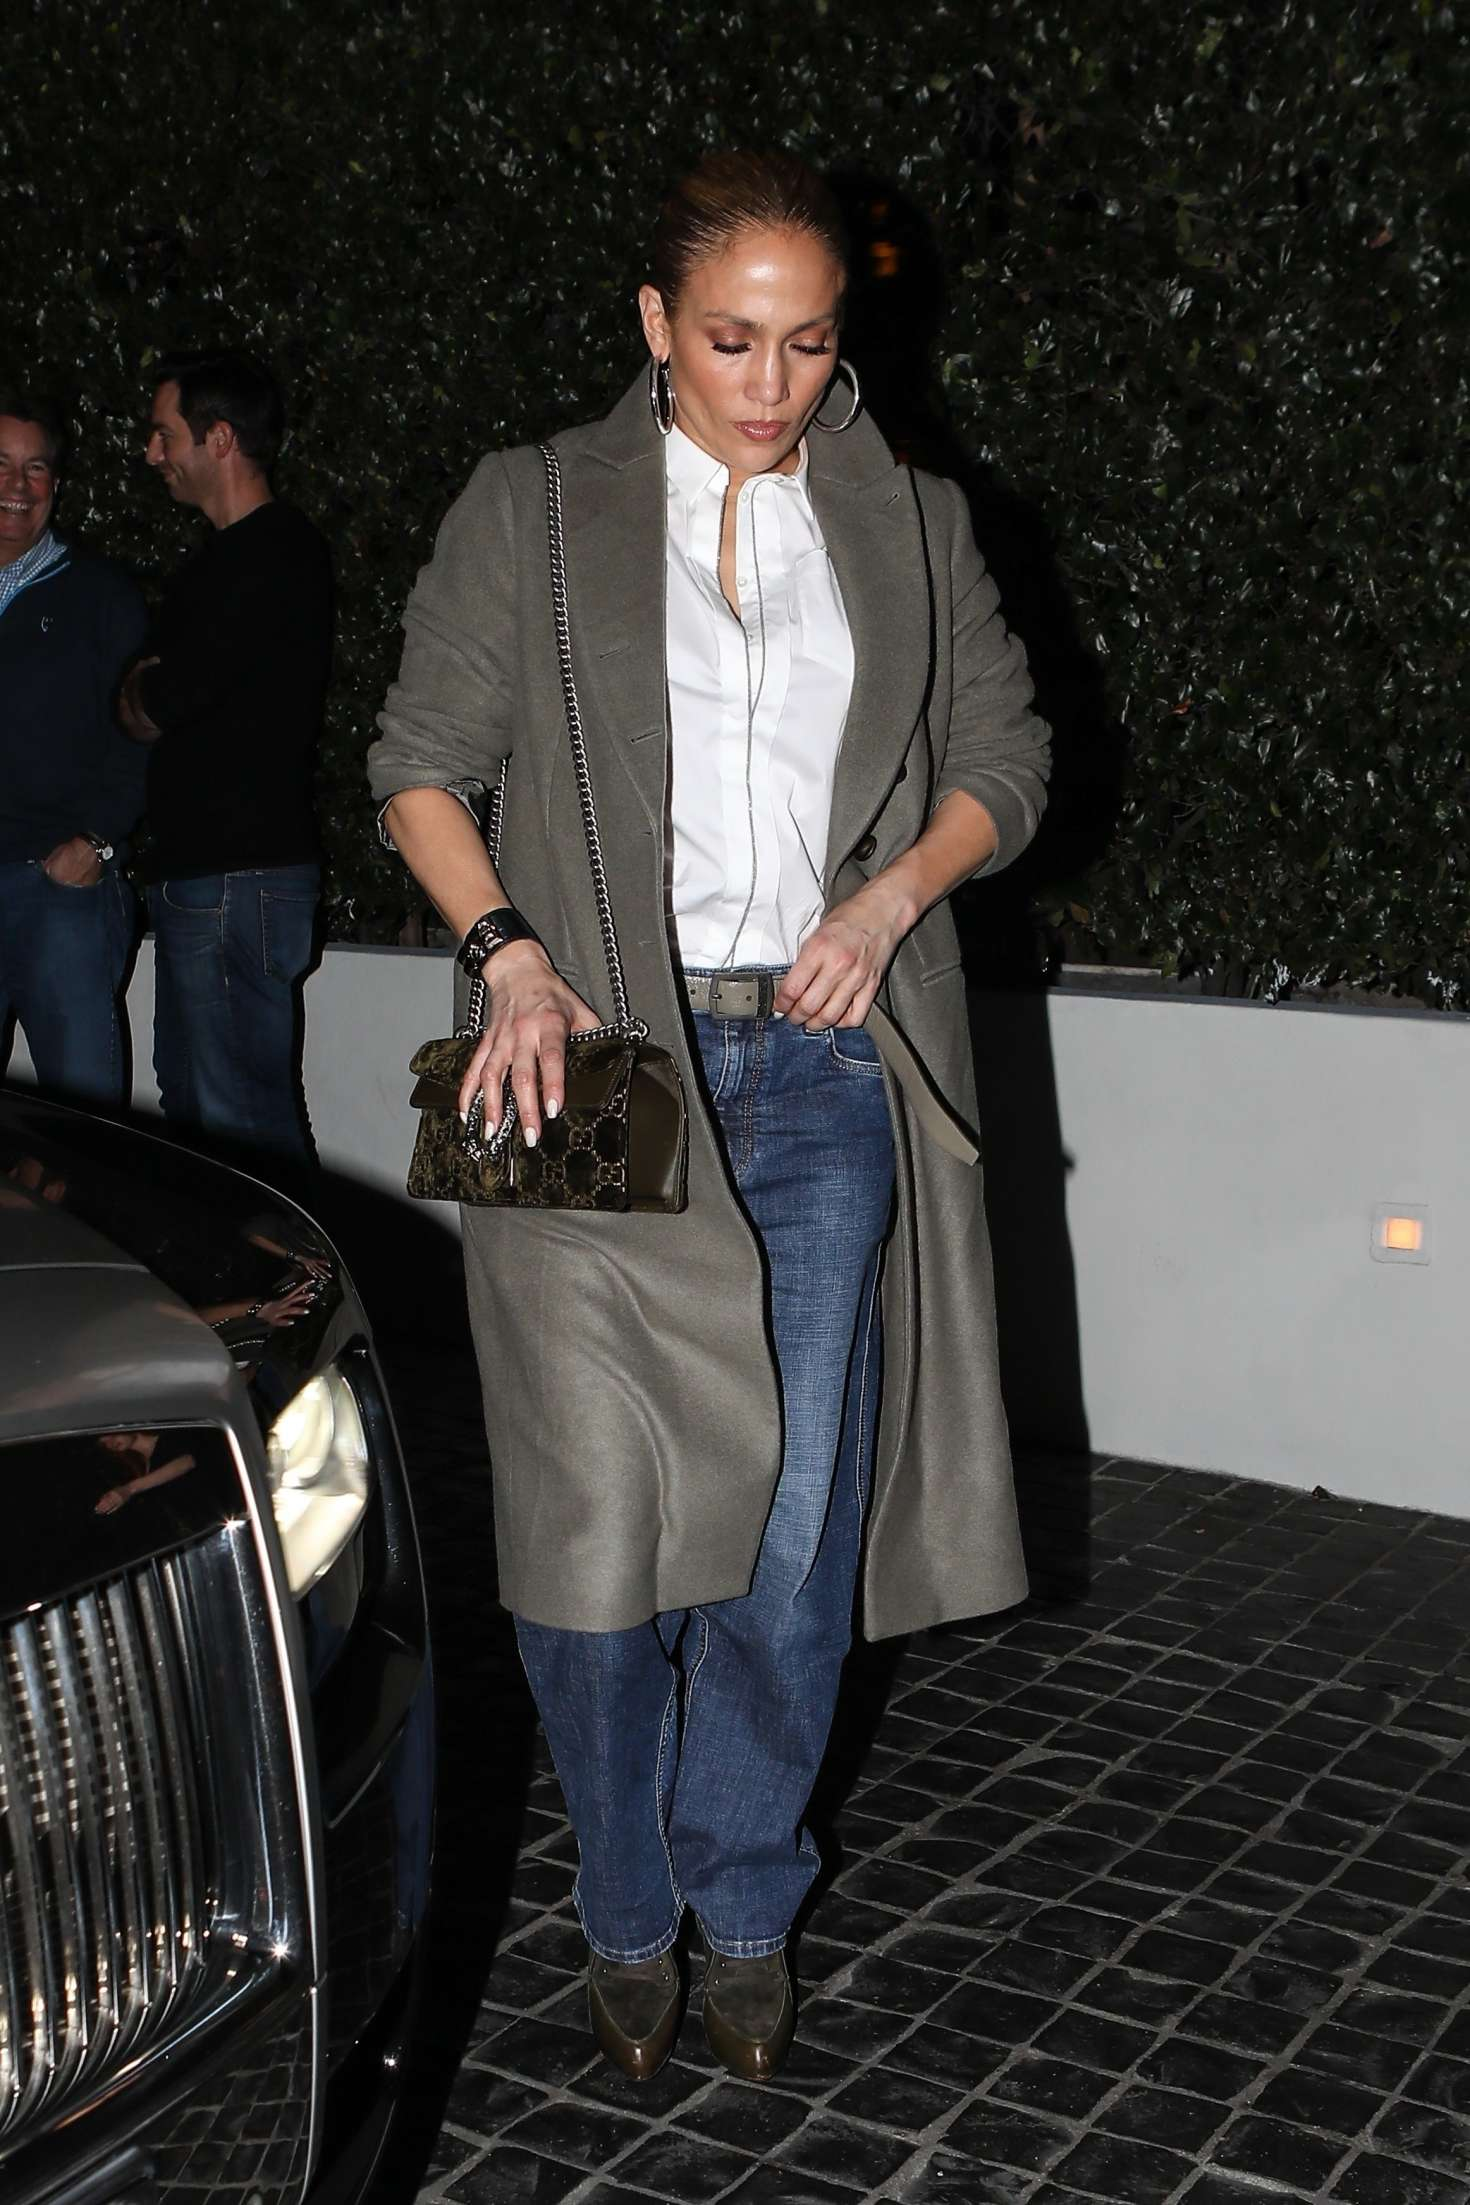 Jennifer Lopez at Cecconi's restaurant in West Hollywood